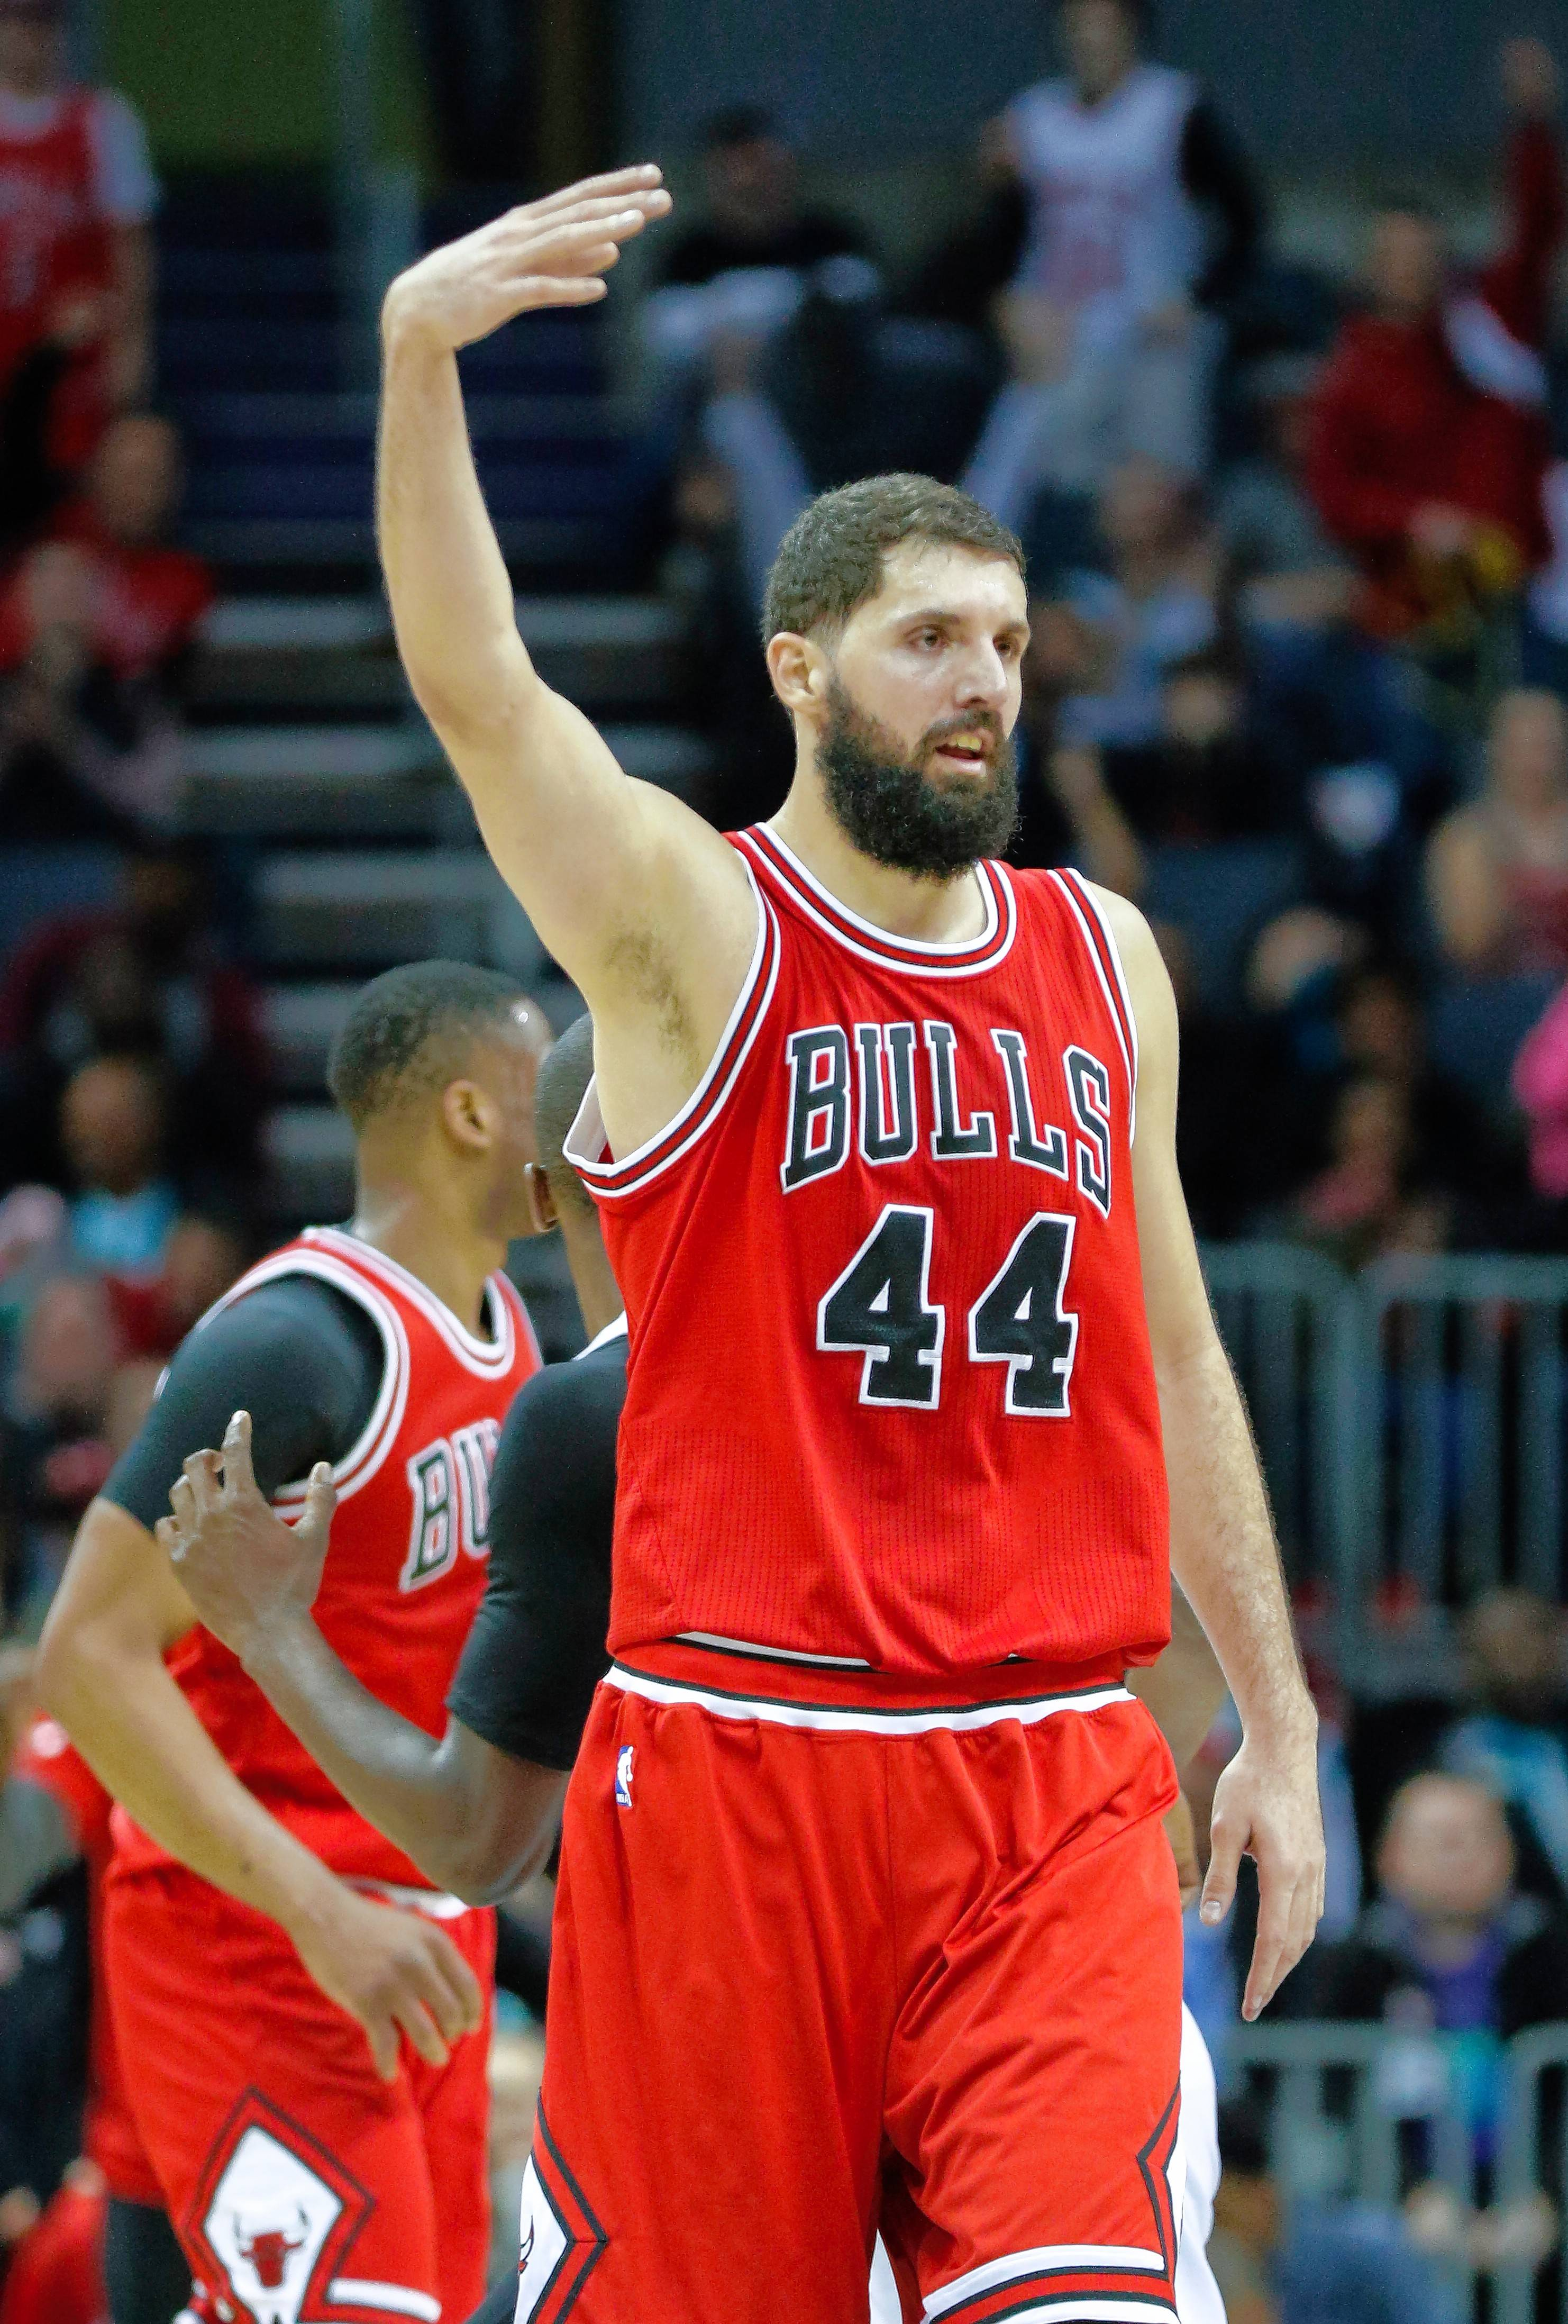 Future uncertain, Mirotic tries to finish strong